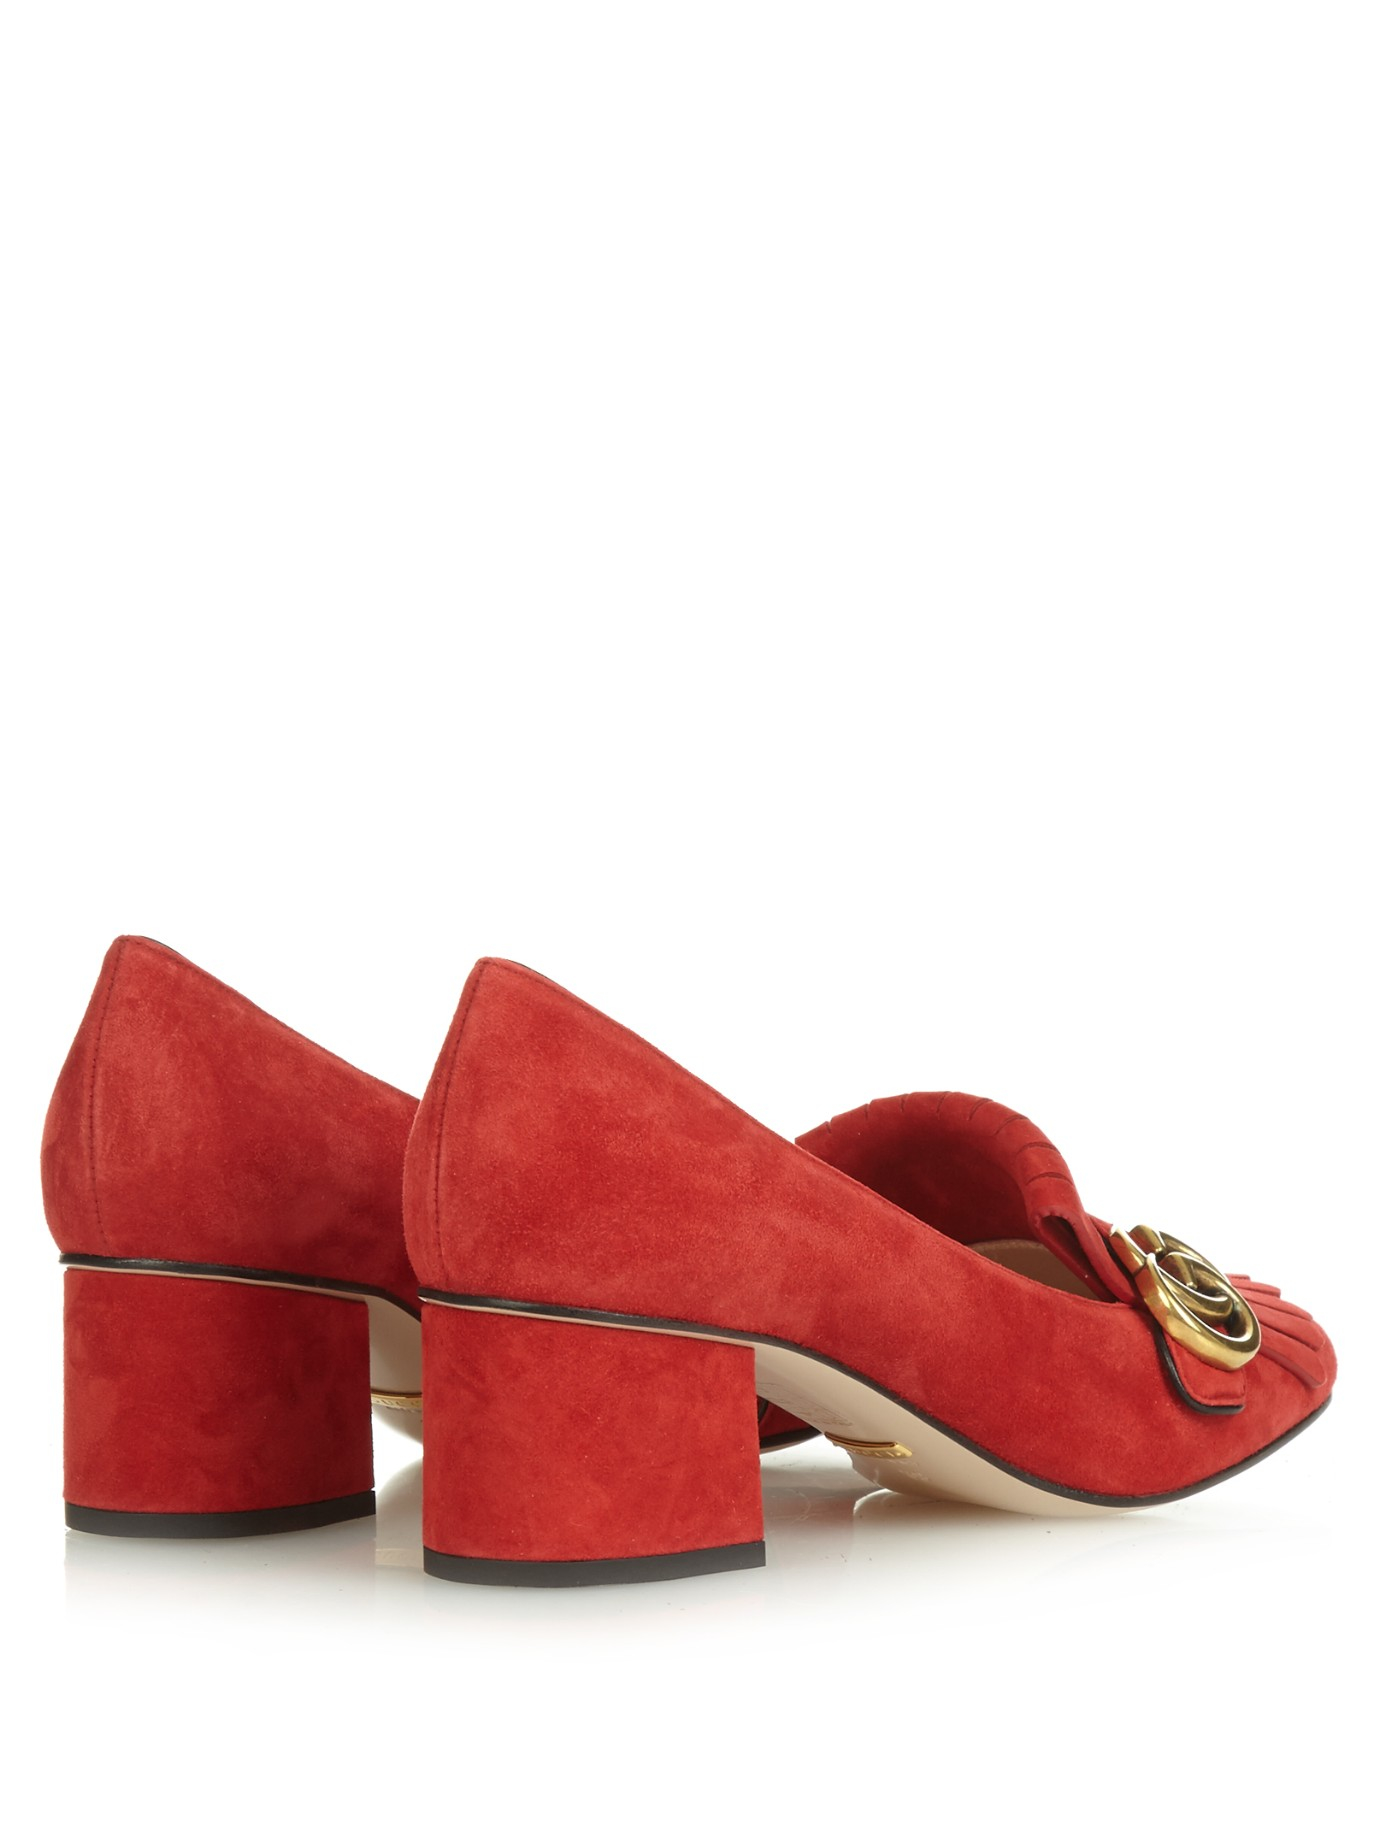 4a6f6b57314 Lyst - Gucci Marmont Fringed Suede Pumps in Red